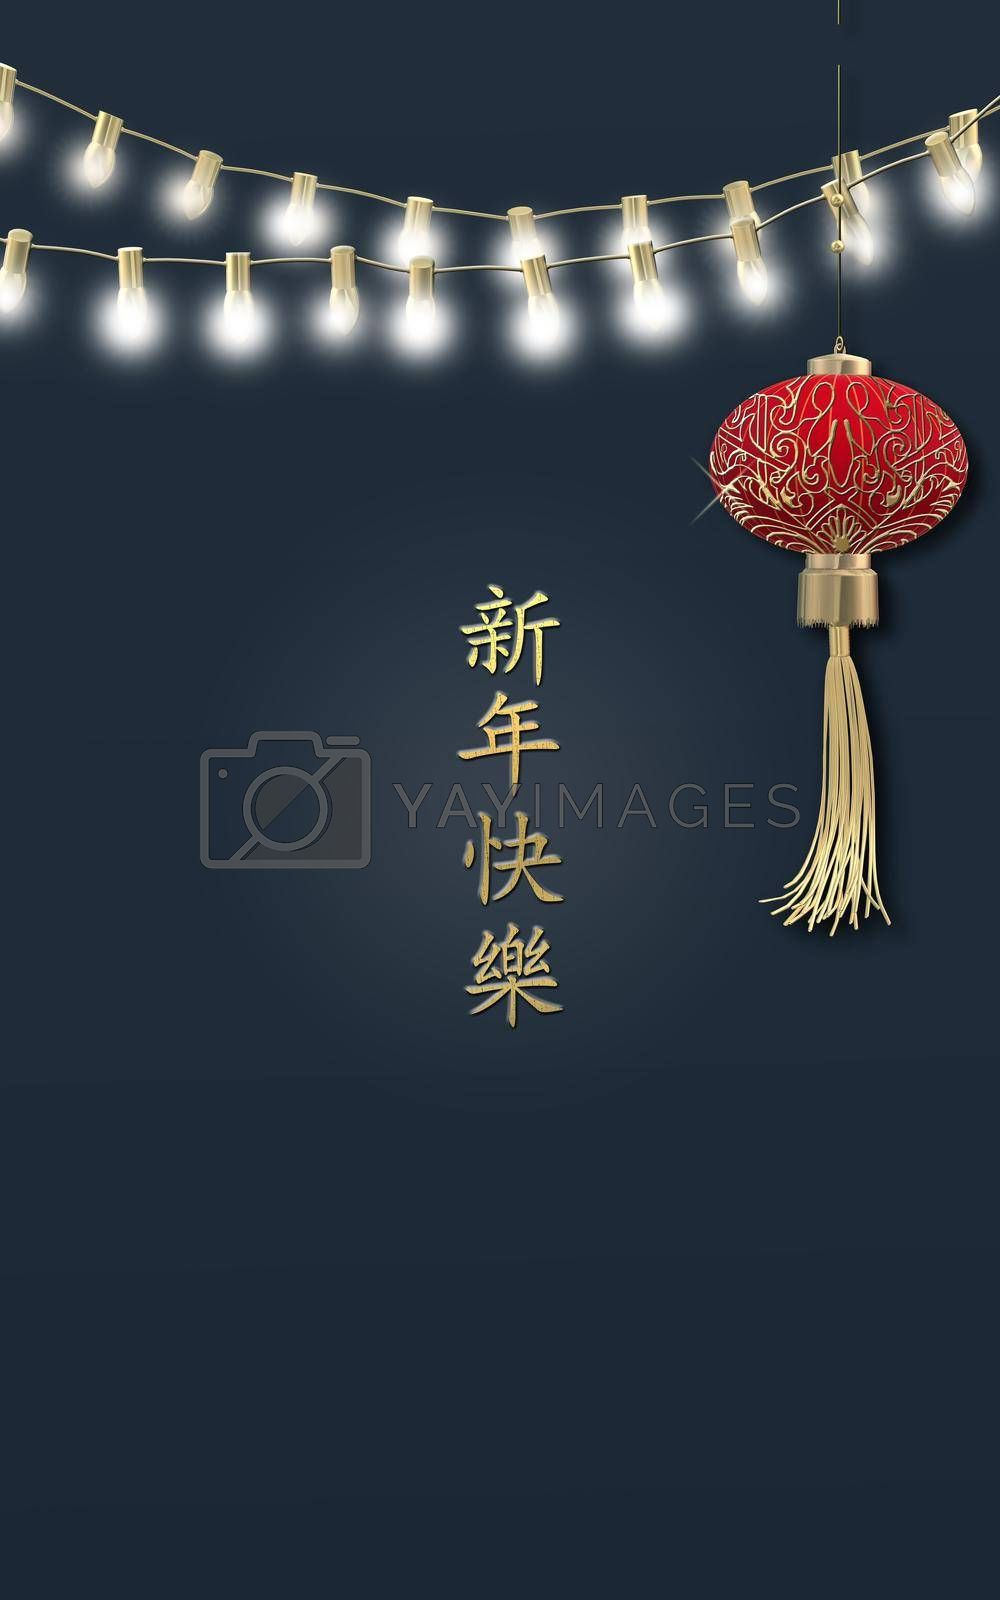 Chinese New Year card. Asian red lantern, string of lights on blue background. Gold Chinese text Happy New Year. Vertical design. Place for text, mock up. 3D illustration